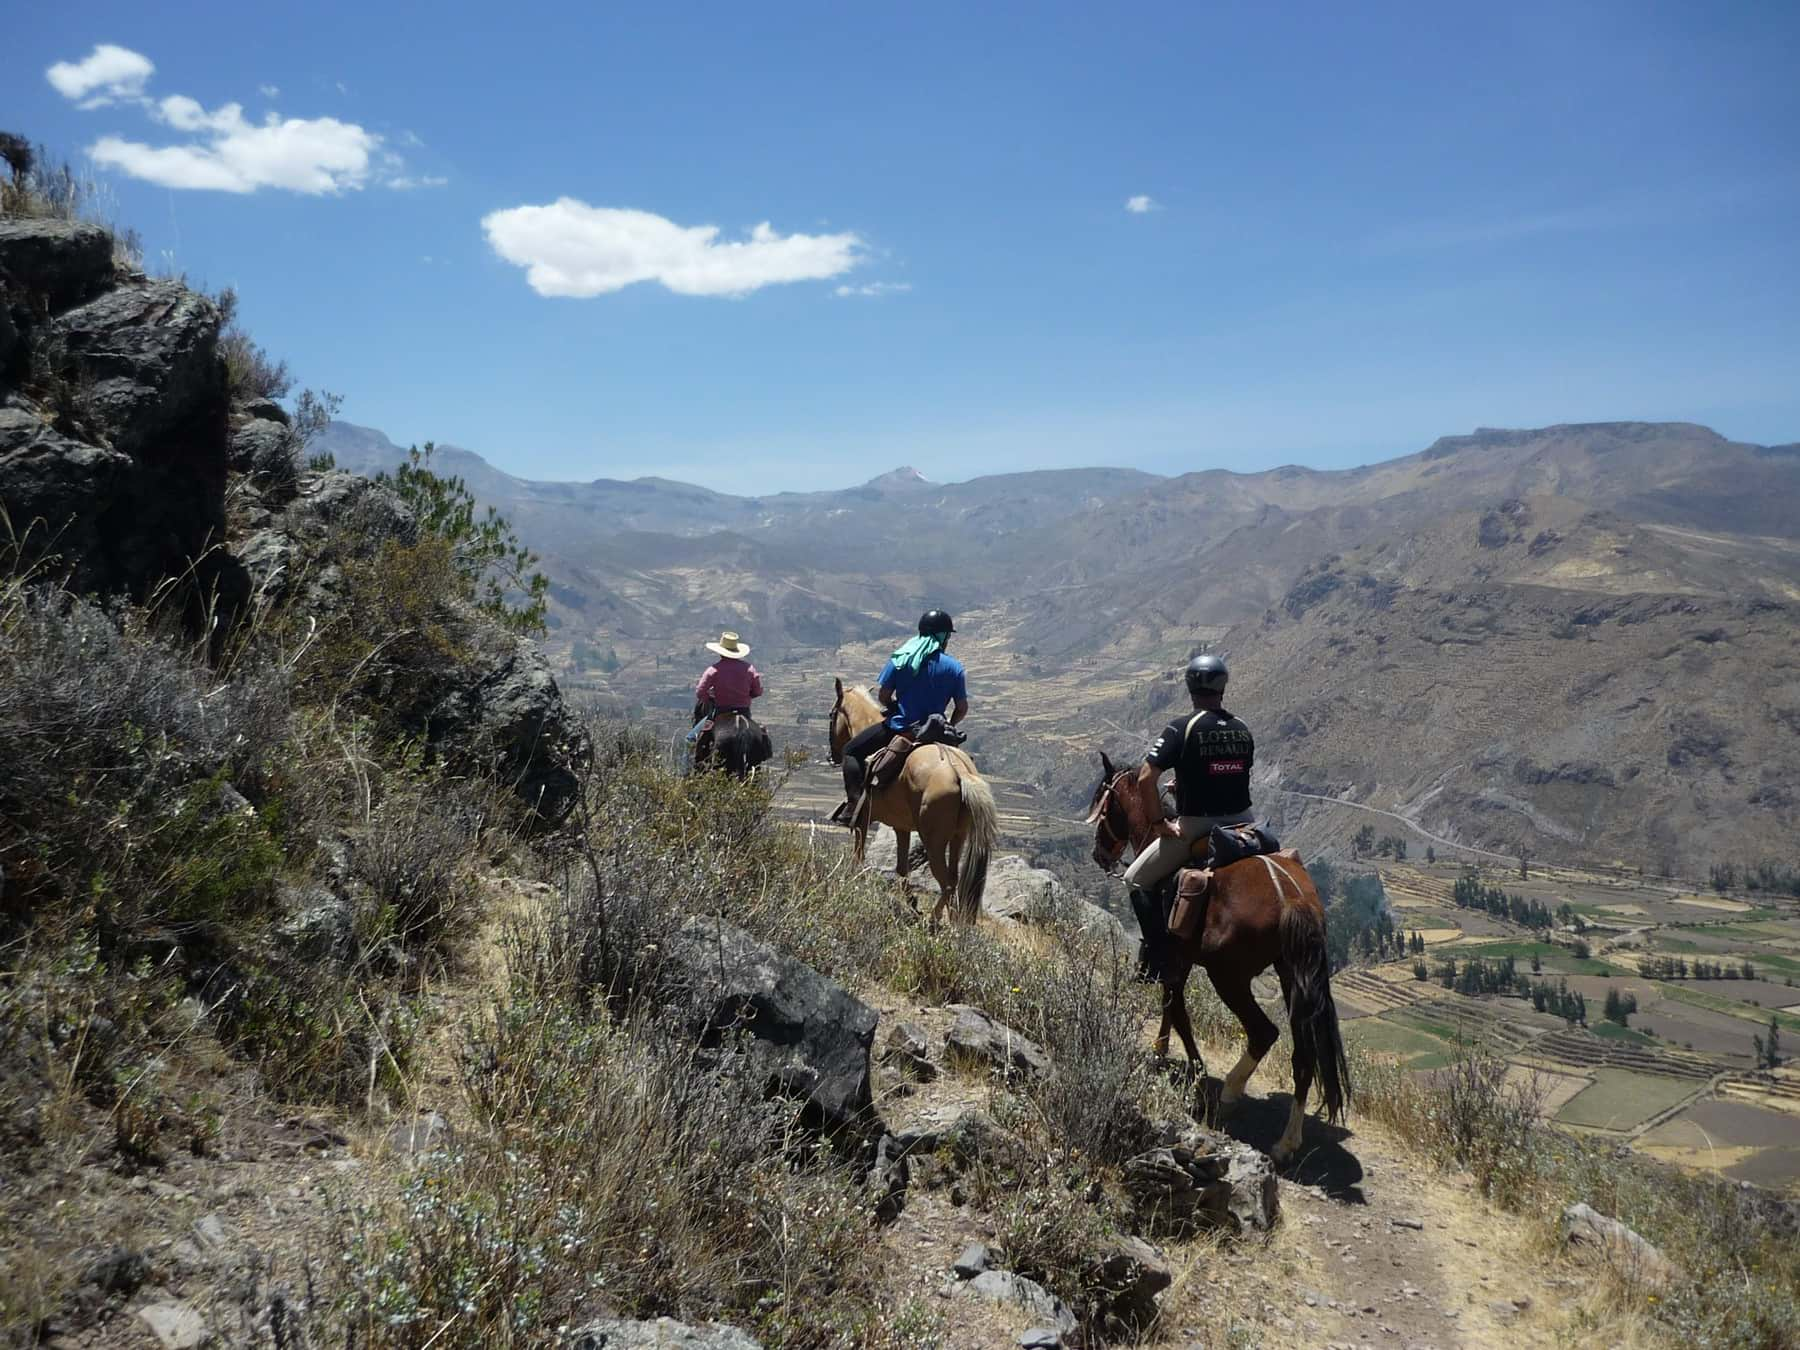 Horseback ride in the Colca Canyon - Peru